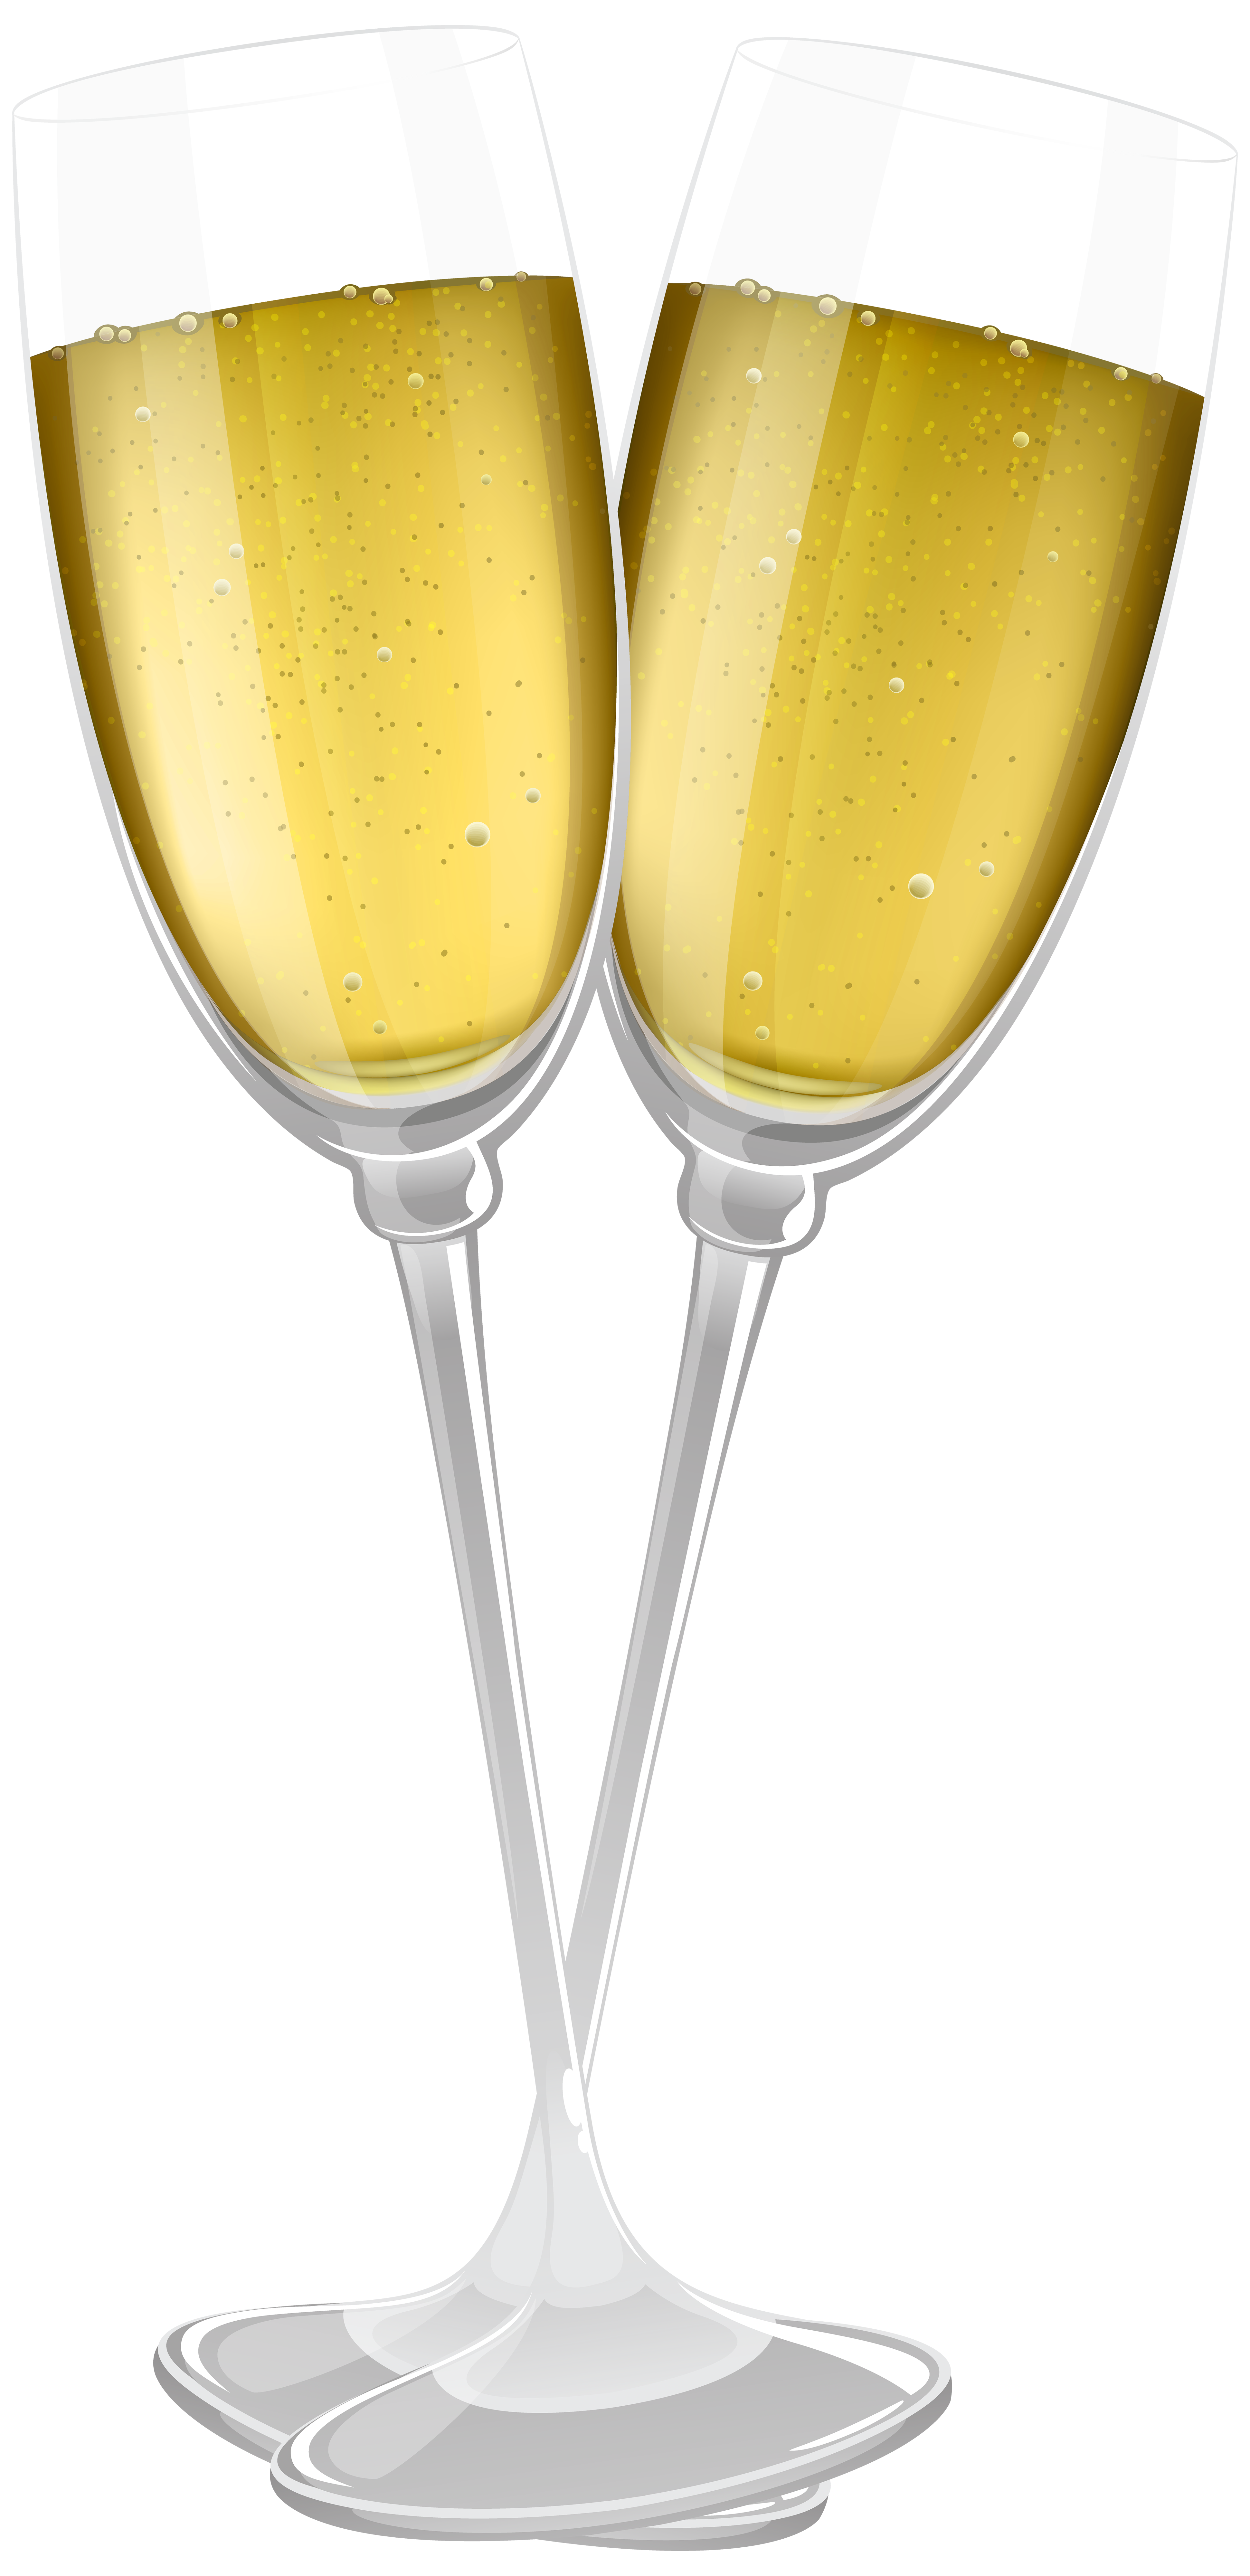 Cocktail clipart two. Glasses of champagne transparent